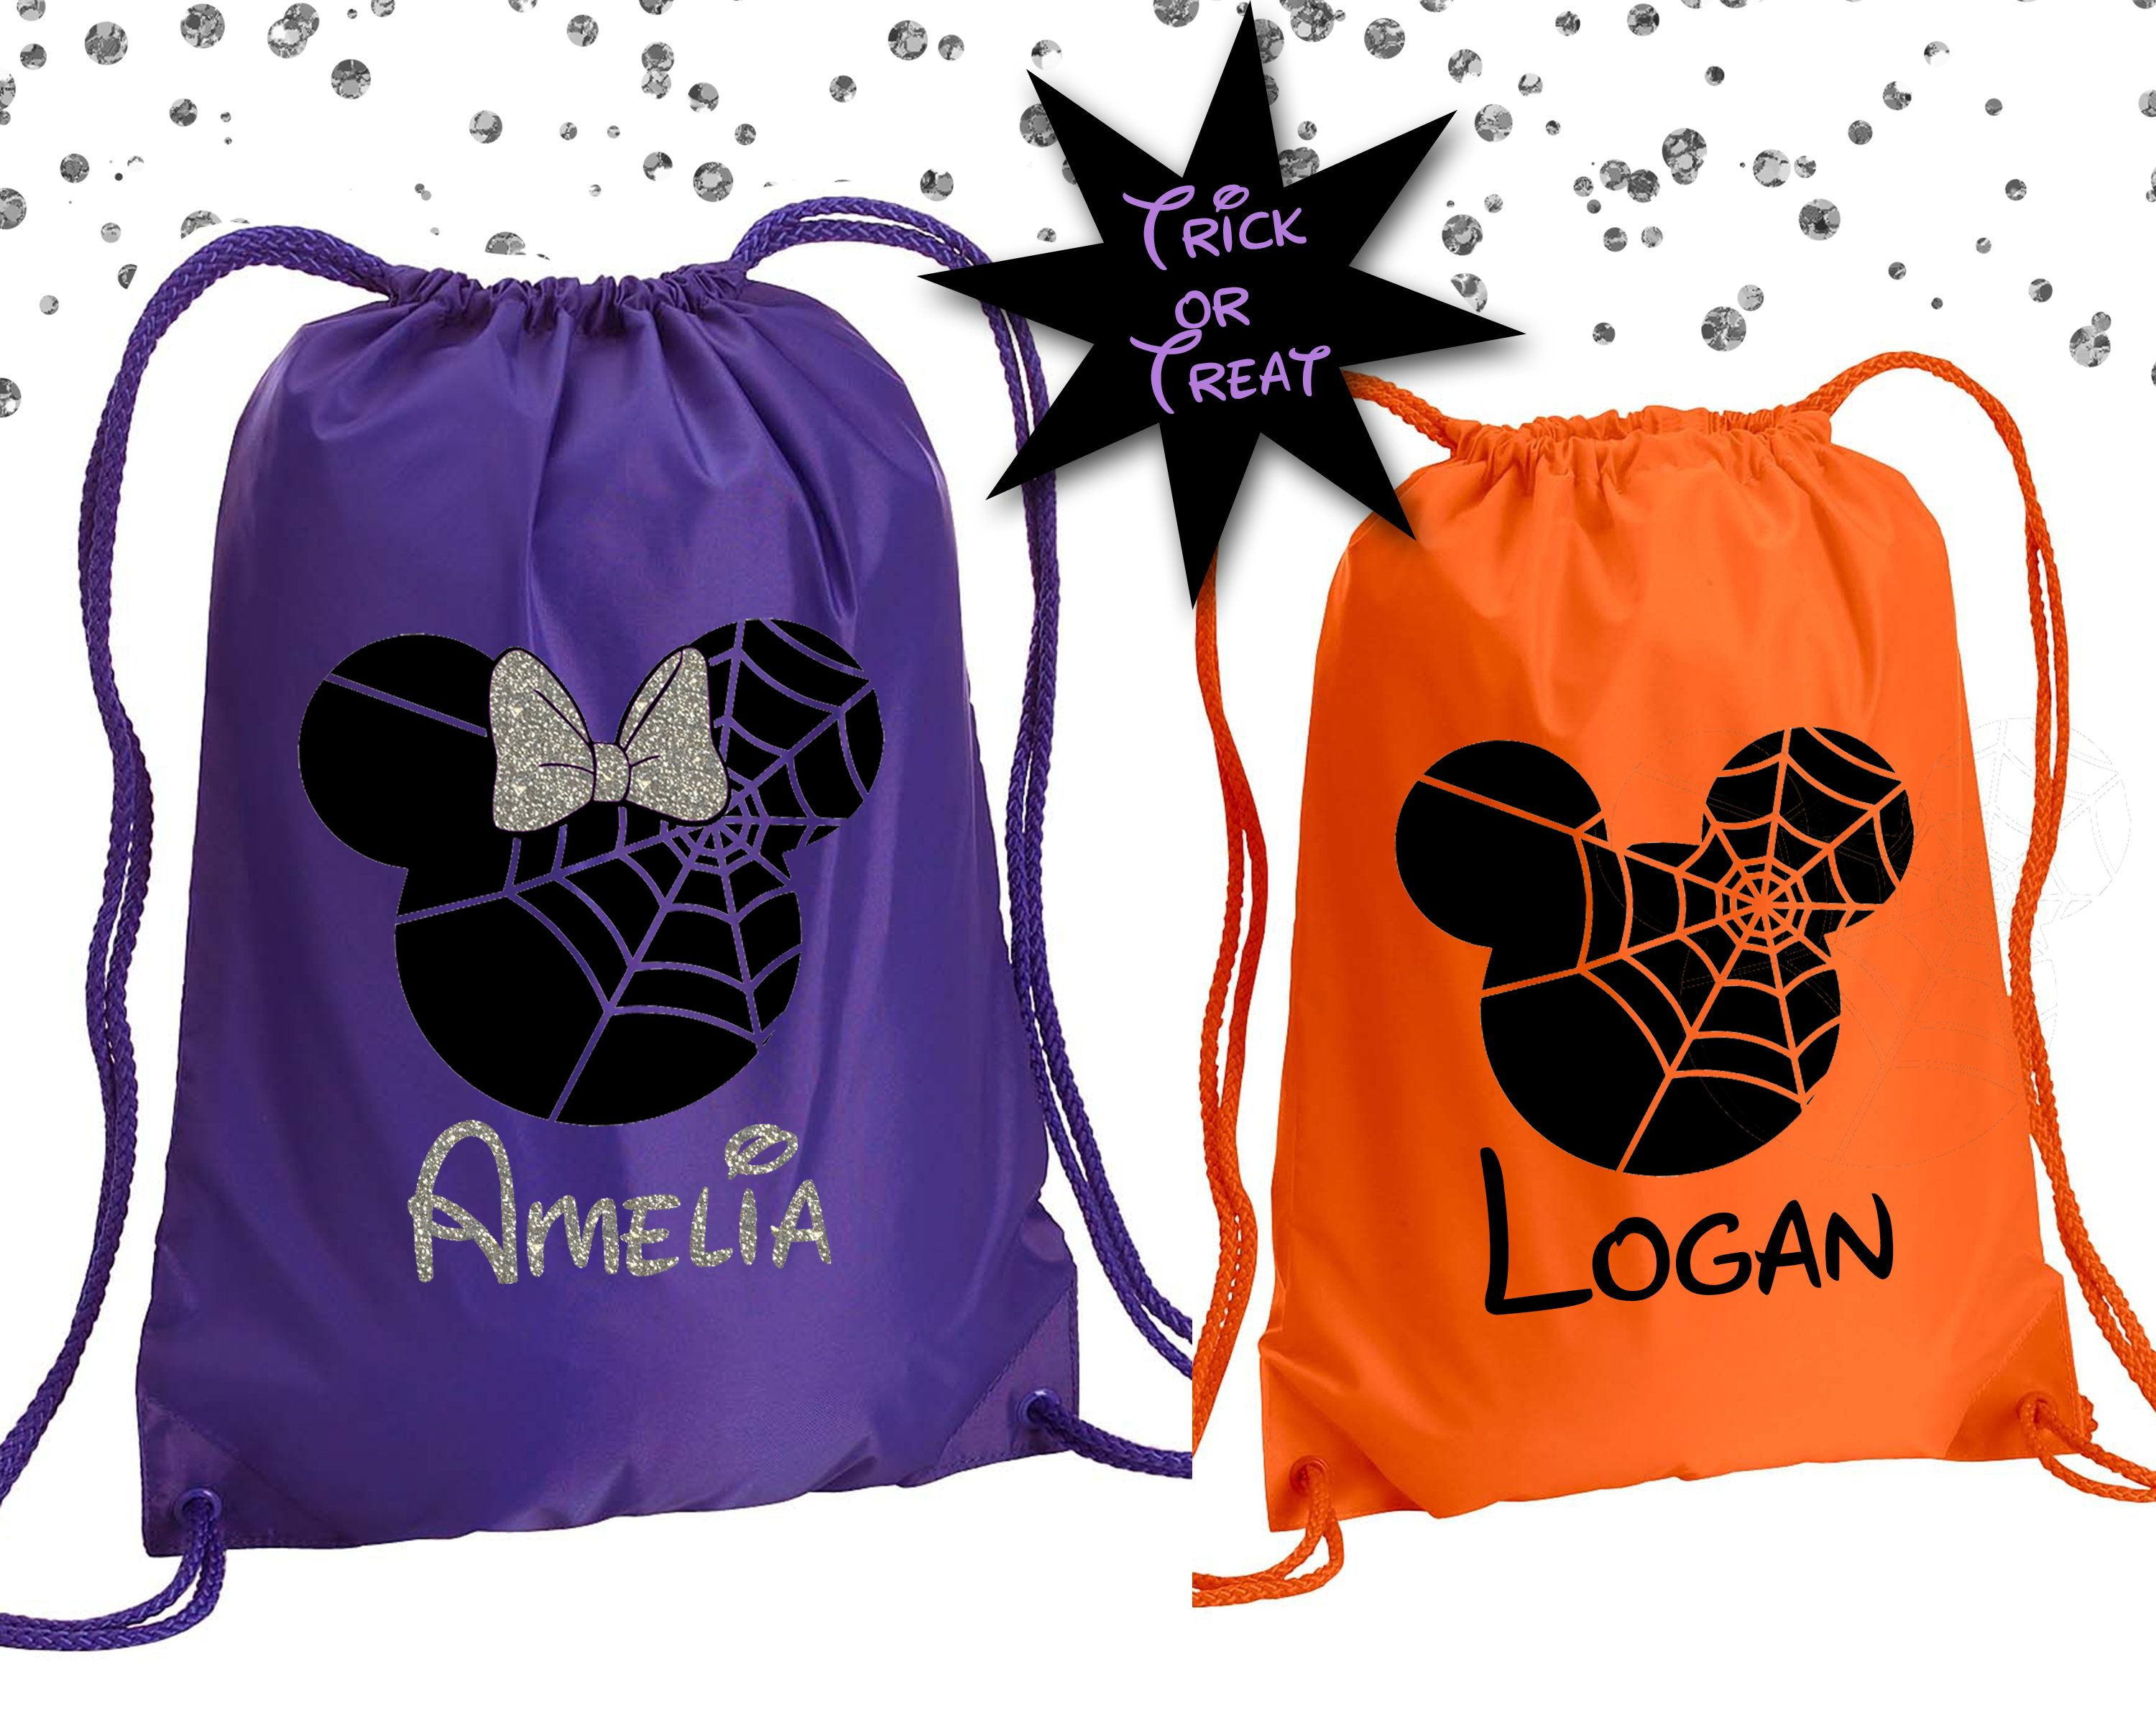 Halloween Trick Or Treat Amelia Ohio 2020 Disney Halloween Bag Disney Trick or Treat BagPersonalized | Etsy